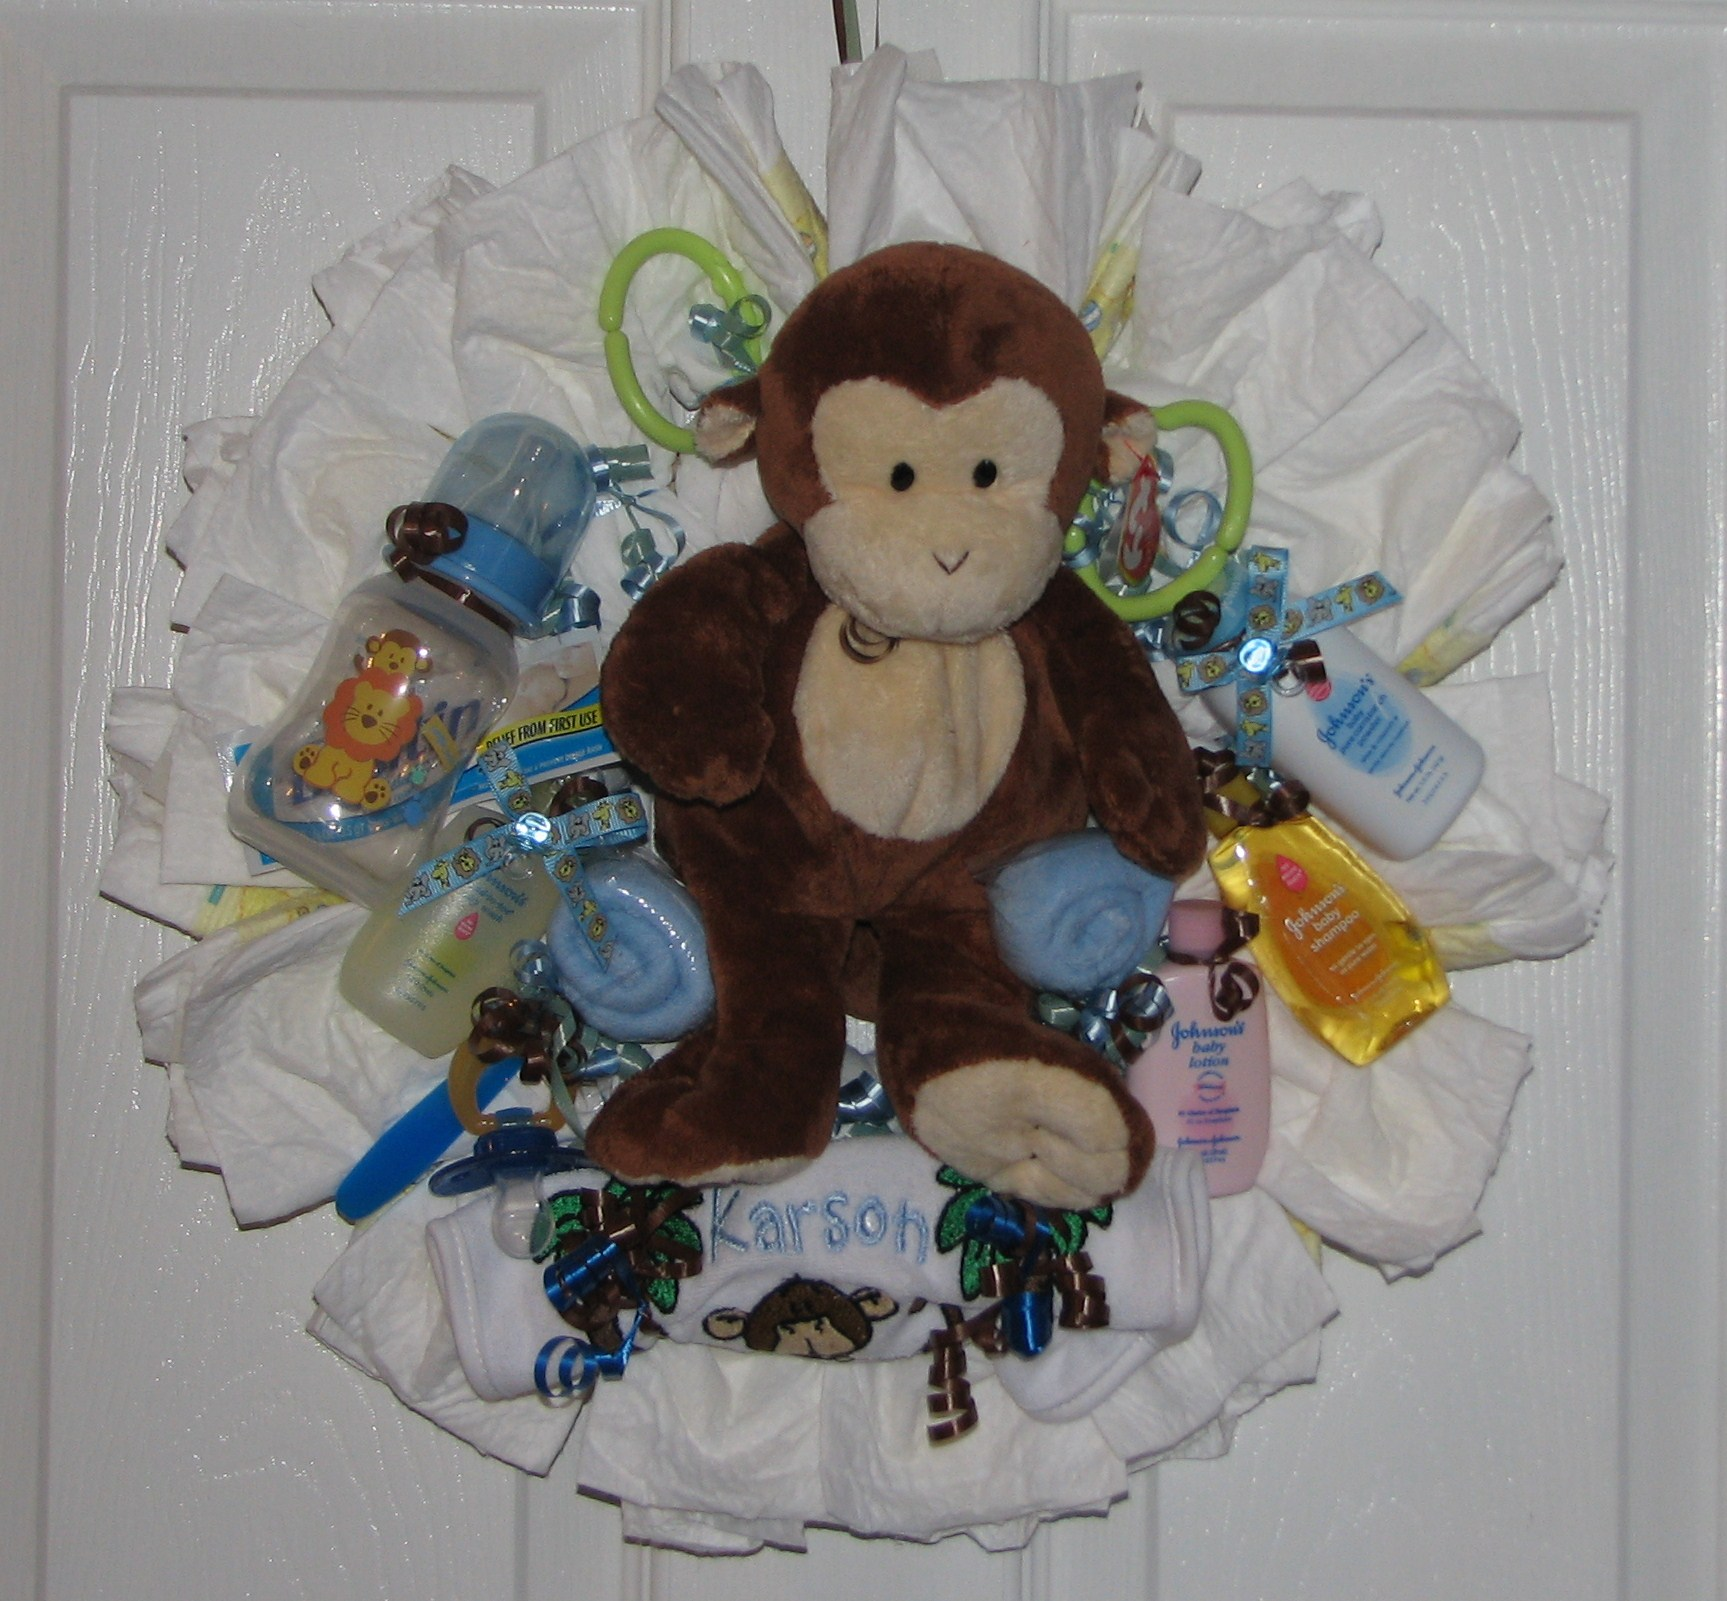 Monkey Dipaer Wreath.JPG - Monkey Diaper Wreath